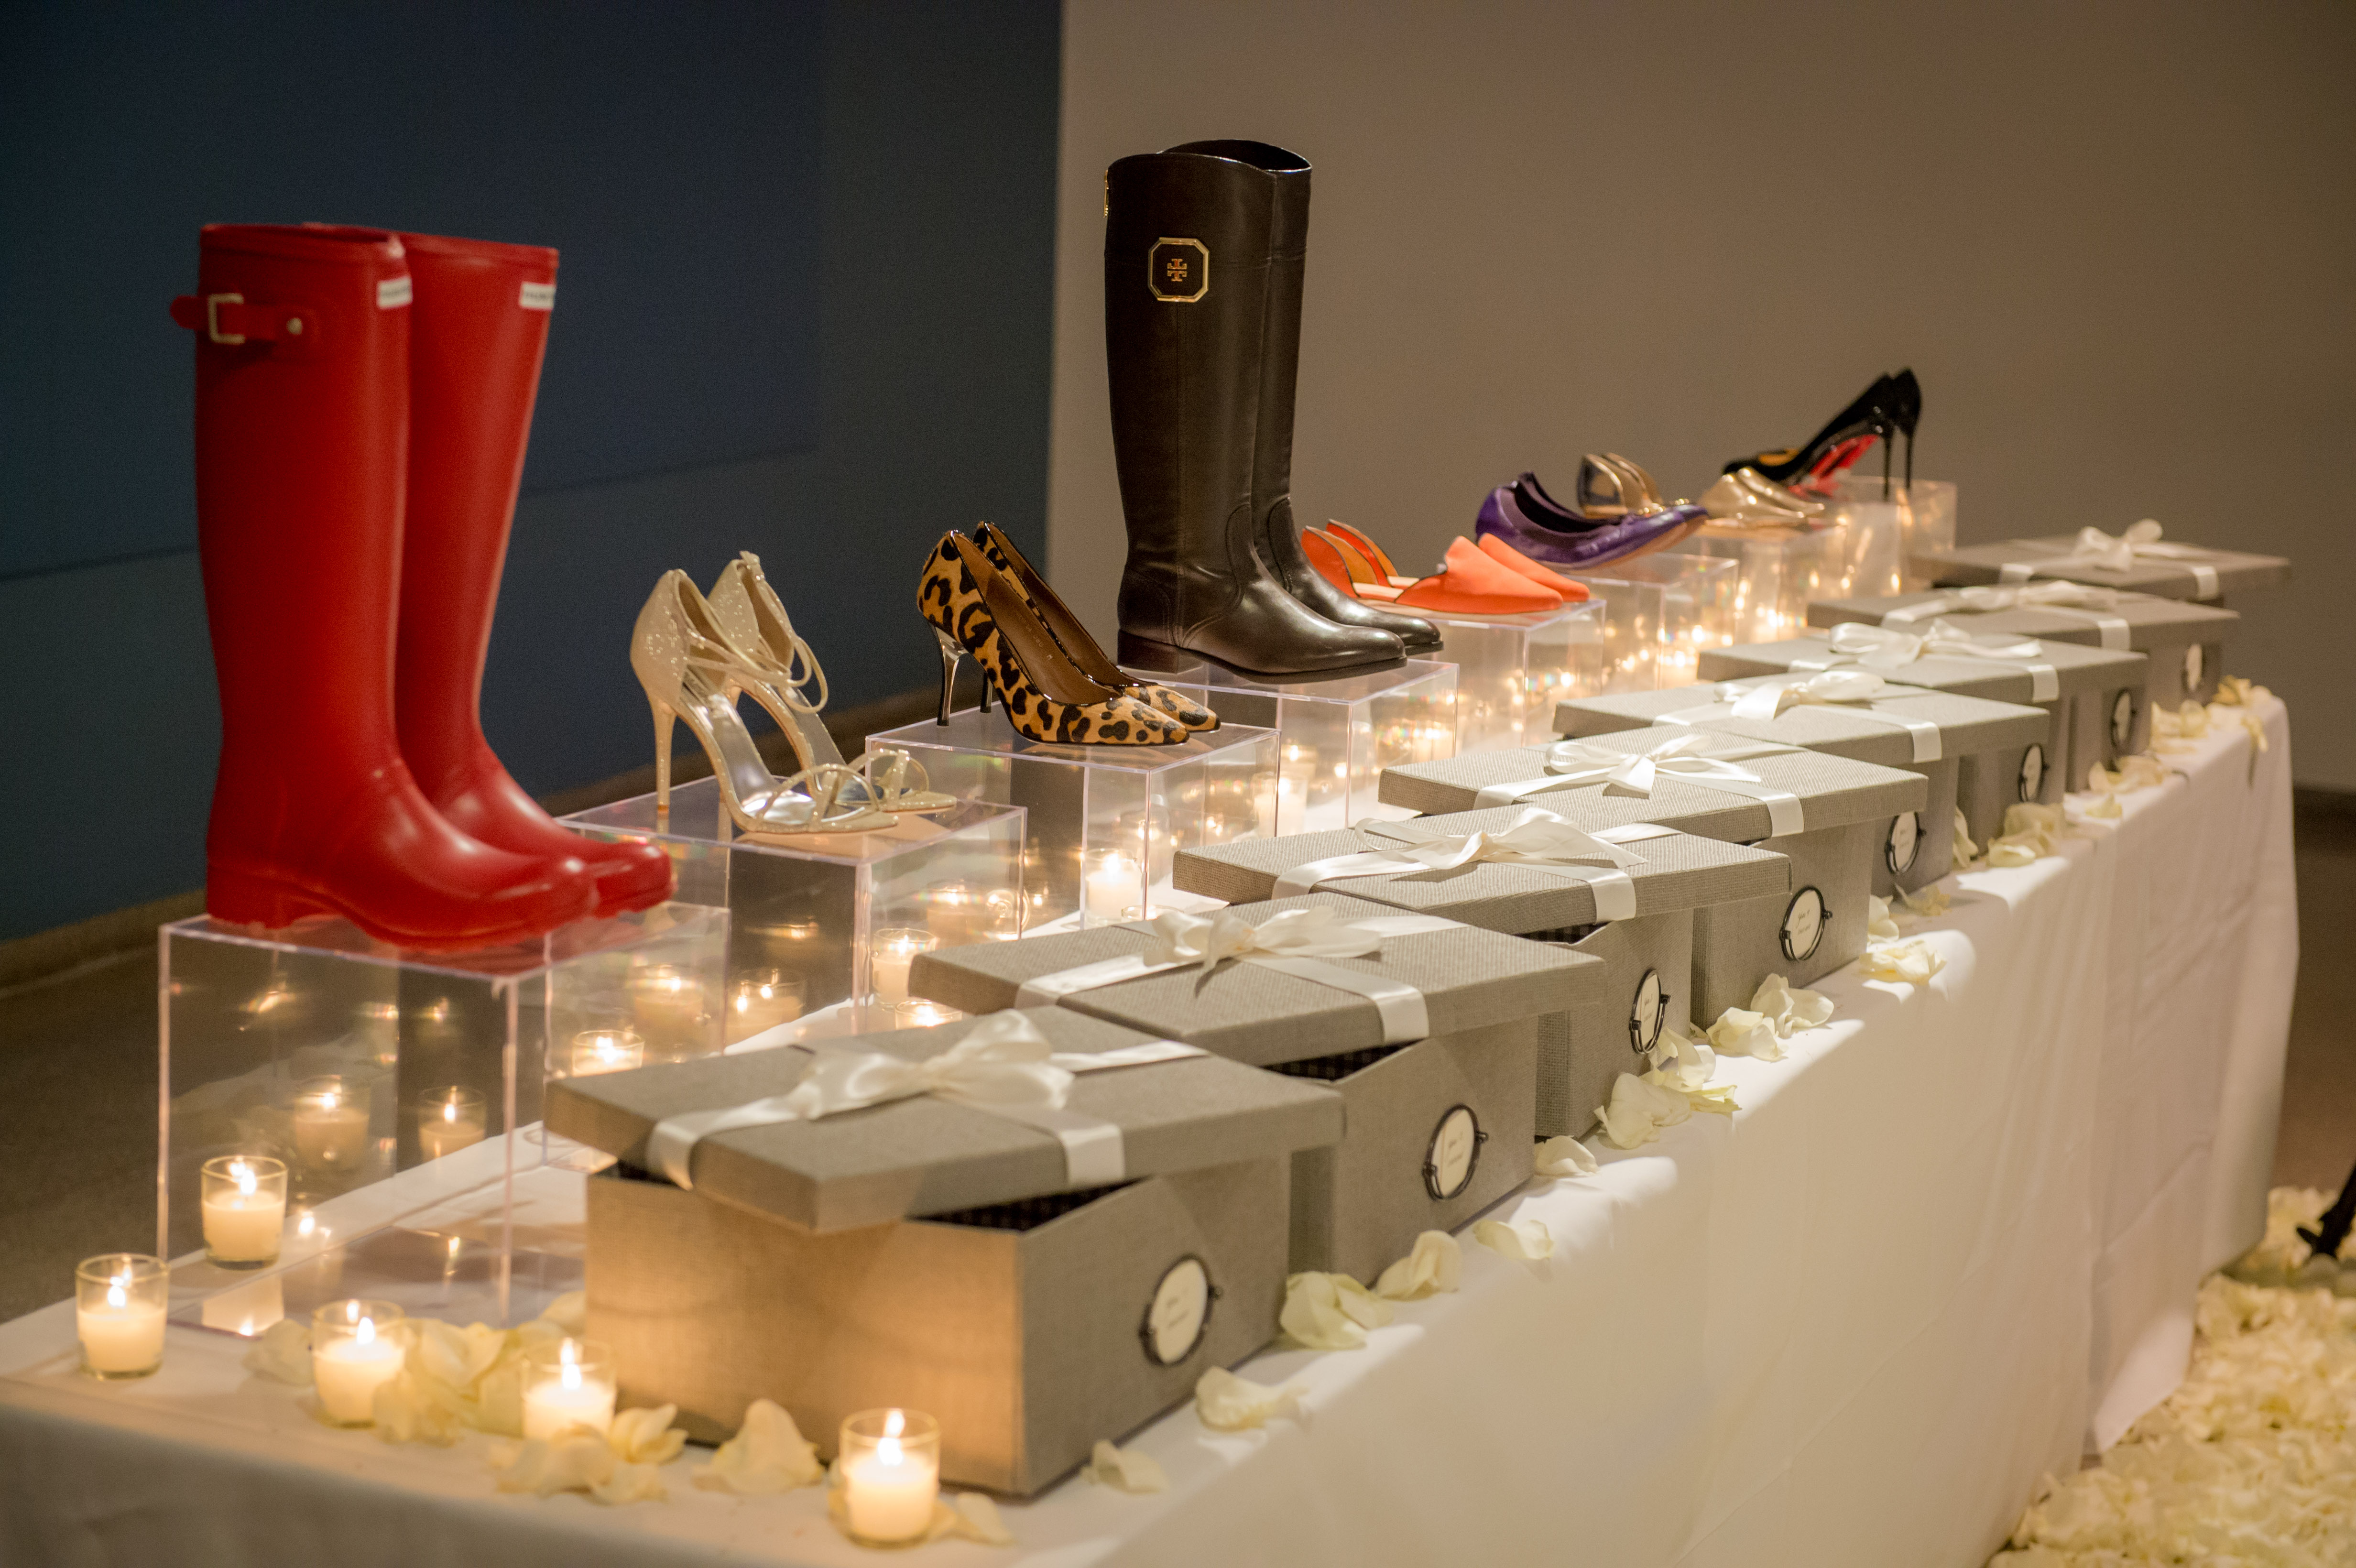 Image 1 of Kelcie and Bo | A Shoe Lover's Dream Proposal